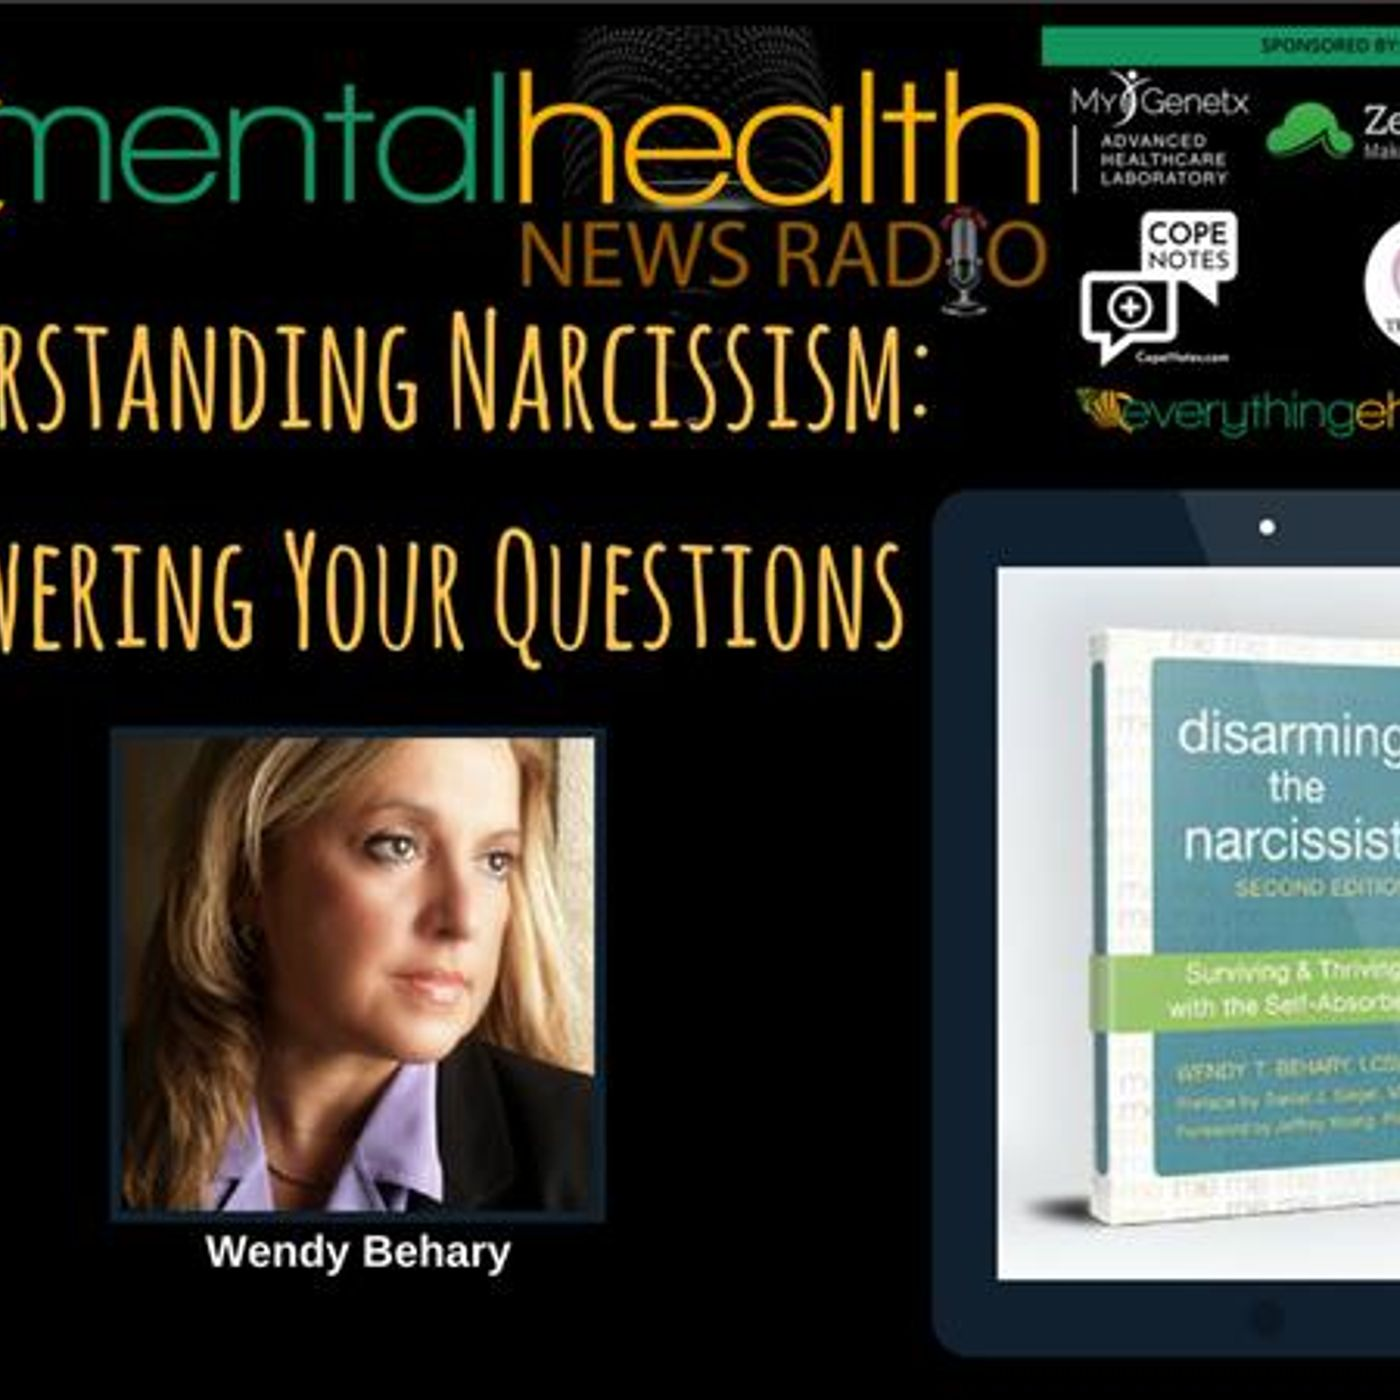 Mental Health News Radio - Understanding Narcissism: Answering Your Questions with Wendy Behary